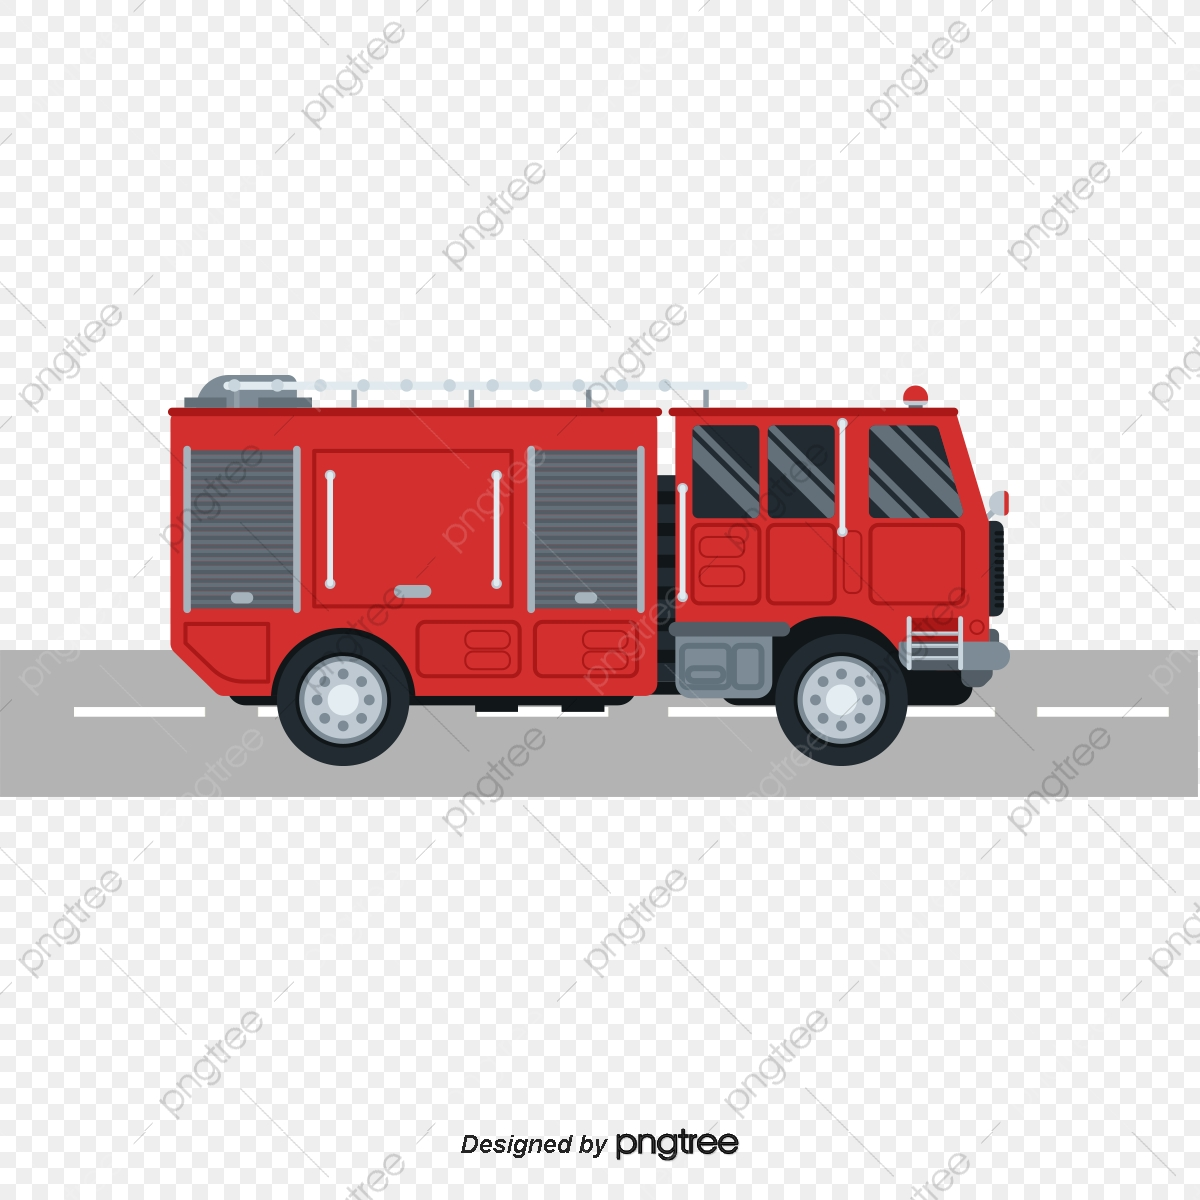 Vector Fire Truck, Truck Clipart, Cartoon, Fire Truck PNG and Vector